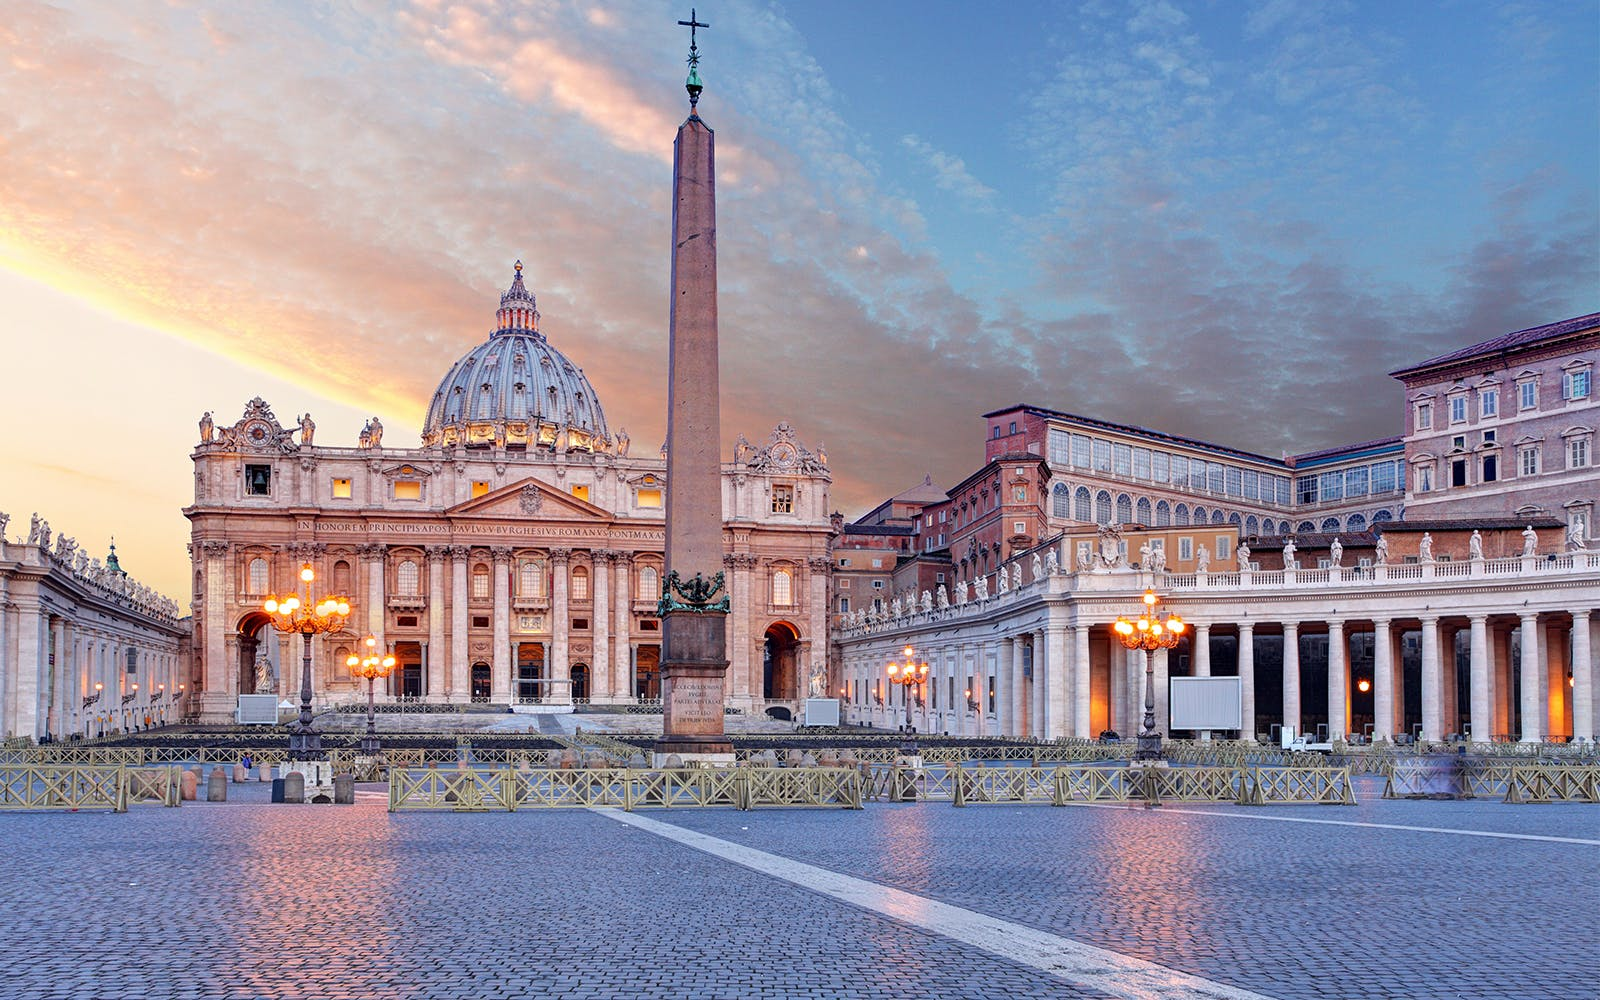 guided tour of vatican museums, sistine chapel & st. peter's basilica-1